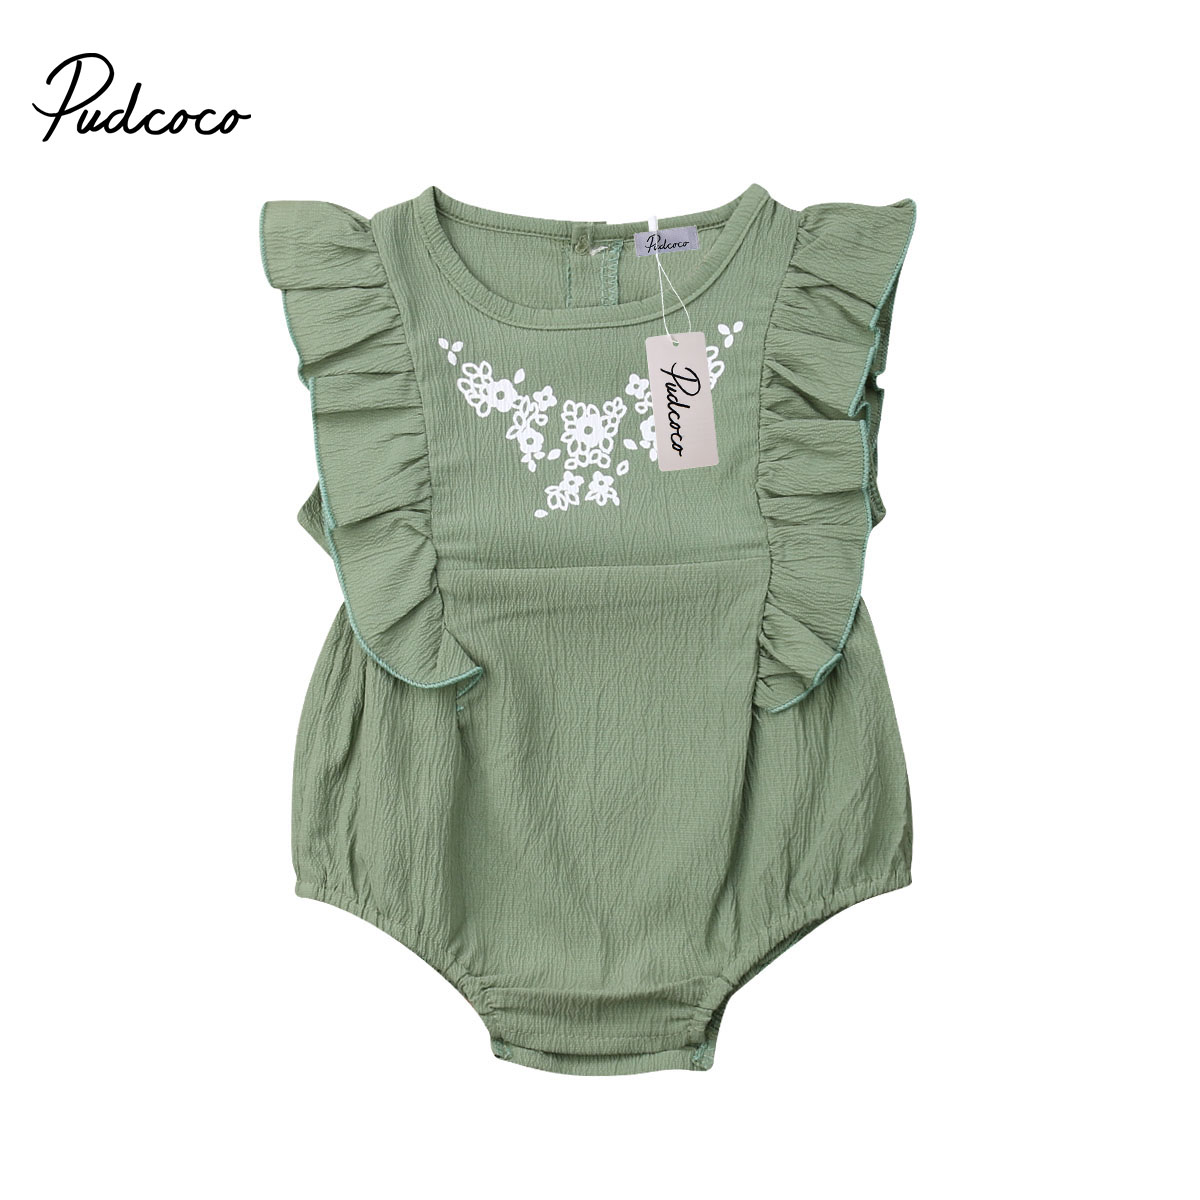 2019 Baby Girl summer clothing Amy green Ruffle flower   Romper   Jumpsuit Outfits for Kid clothes Children newborn infant 0-24M